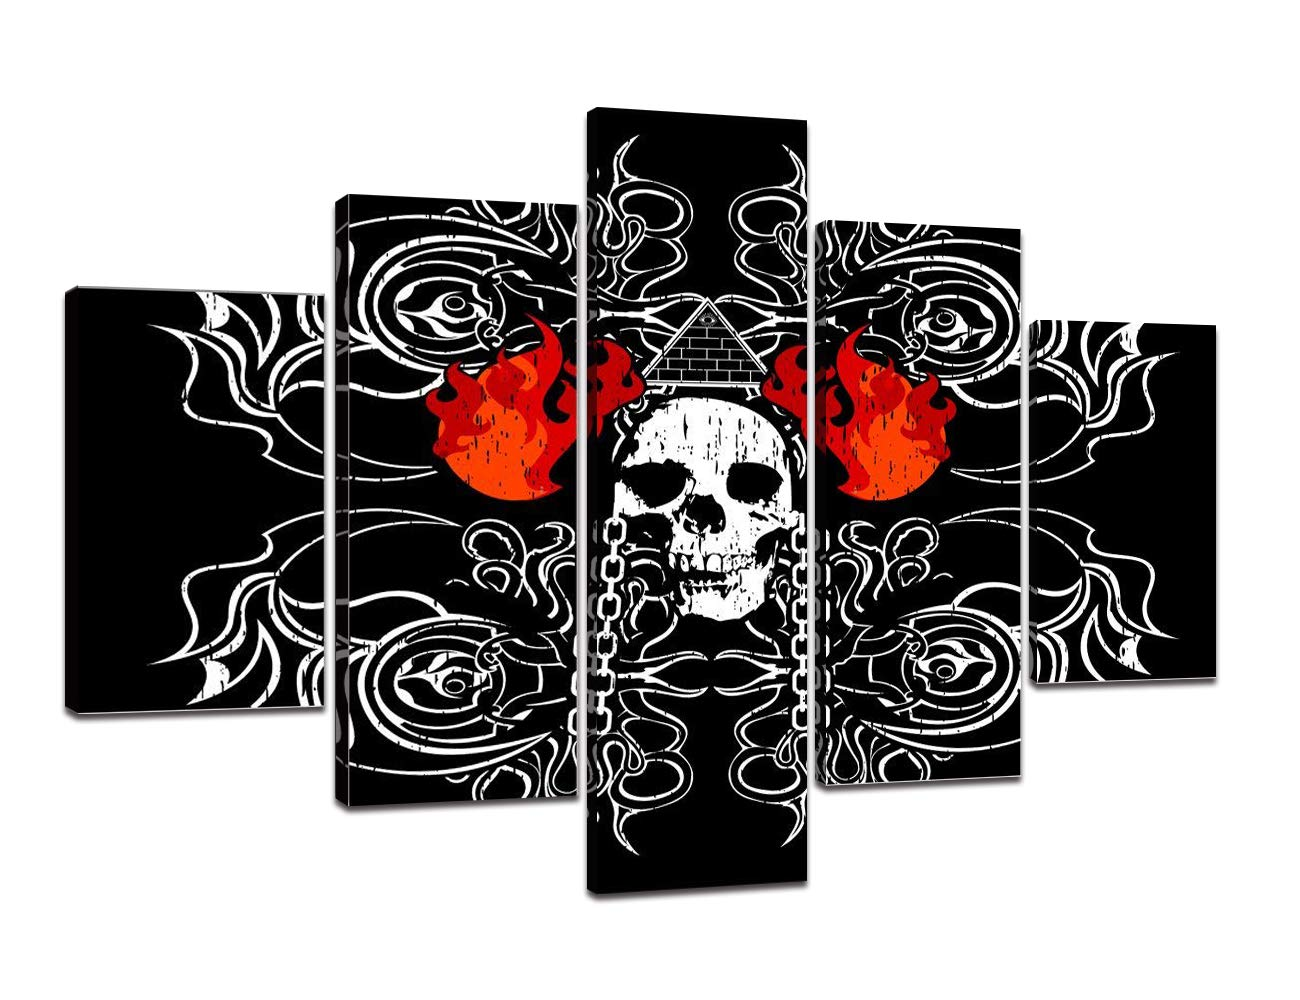 Extra Large Rustic Skeletons Design Painting on Canvas Black White Wall Art Eerie Bones Home Decor Day of The Dead Picture,Framed Artwork for Living Room 5 Panel Stretched Ready to Hang(60''Wx40''H)